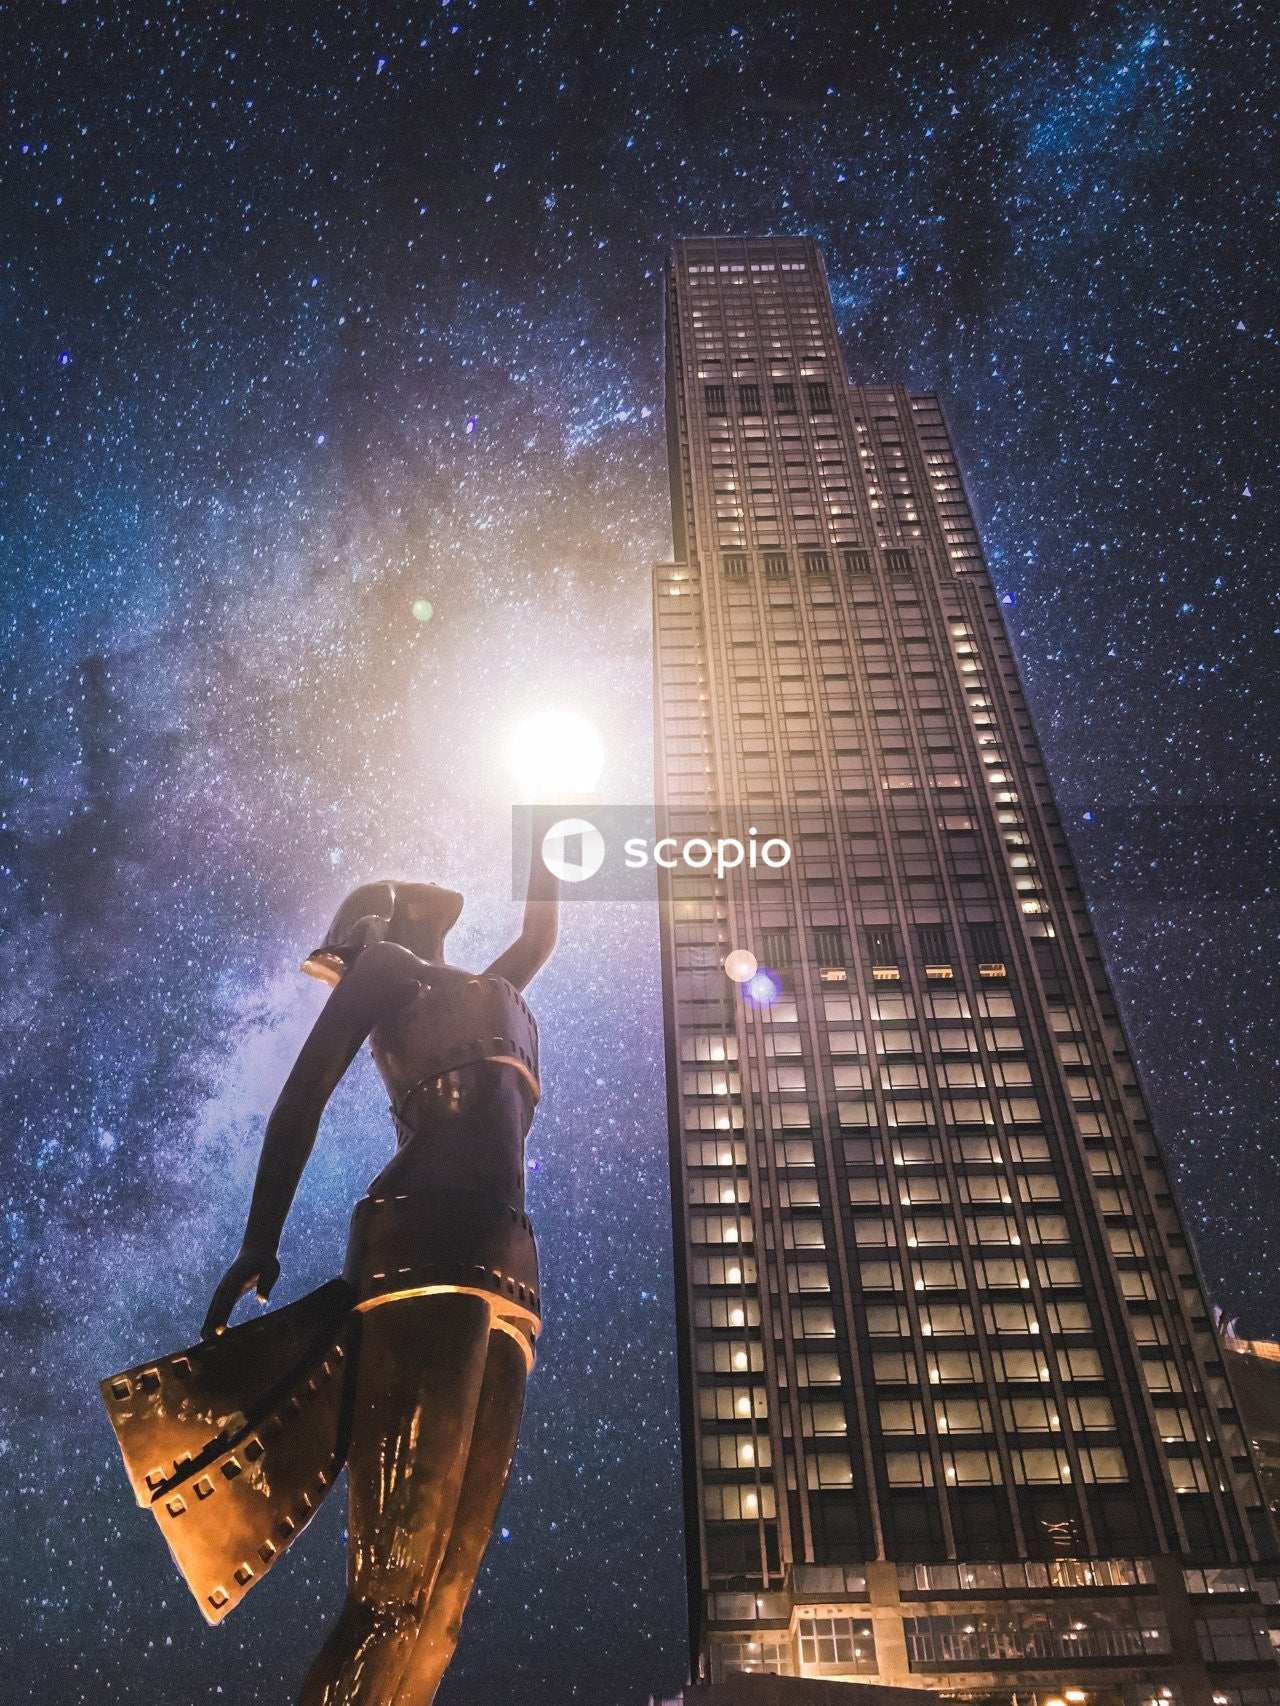 Man in black jacket standing on building during night time